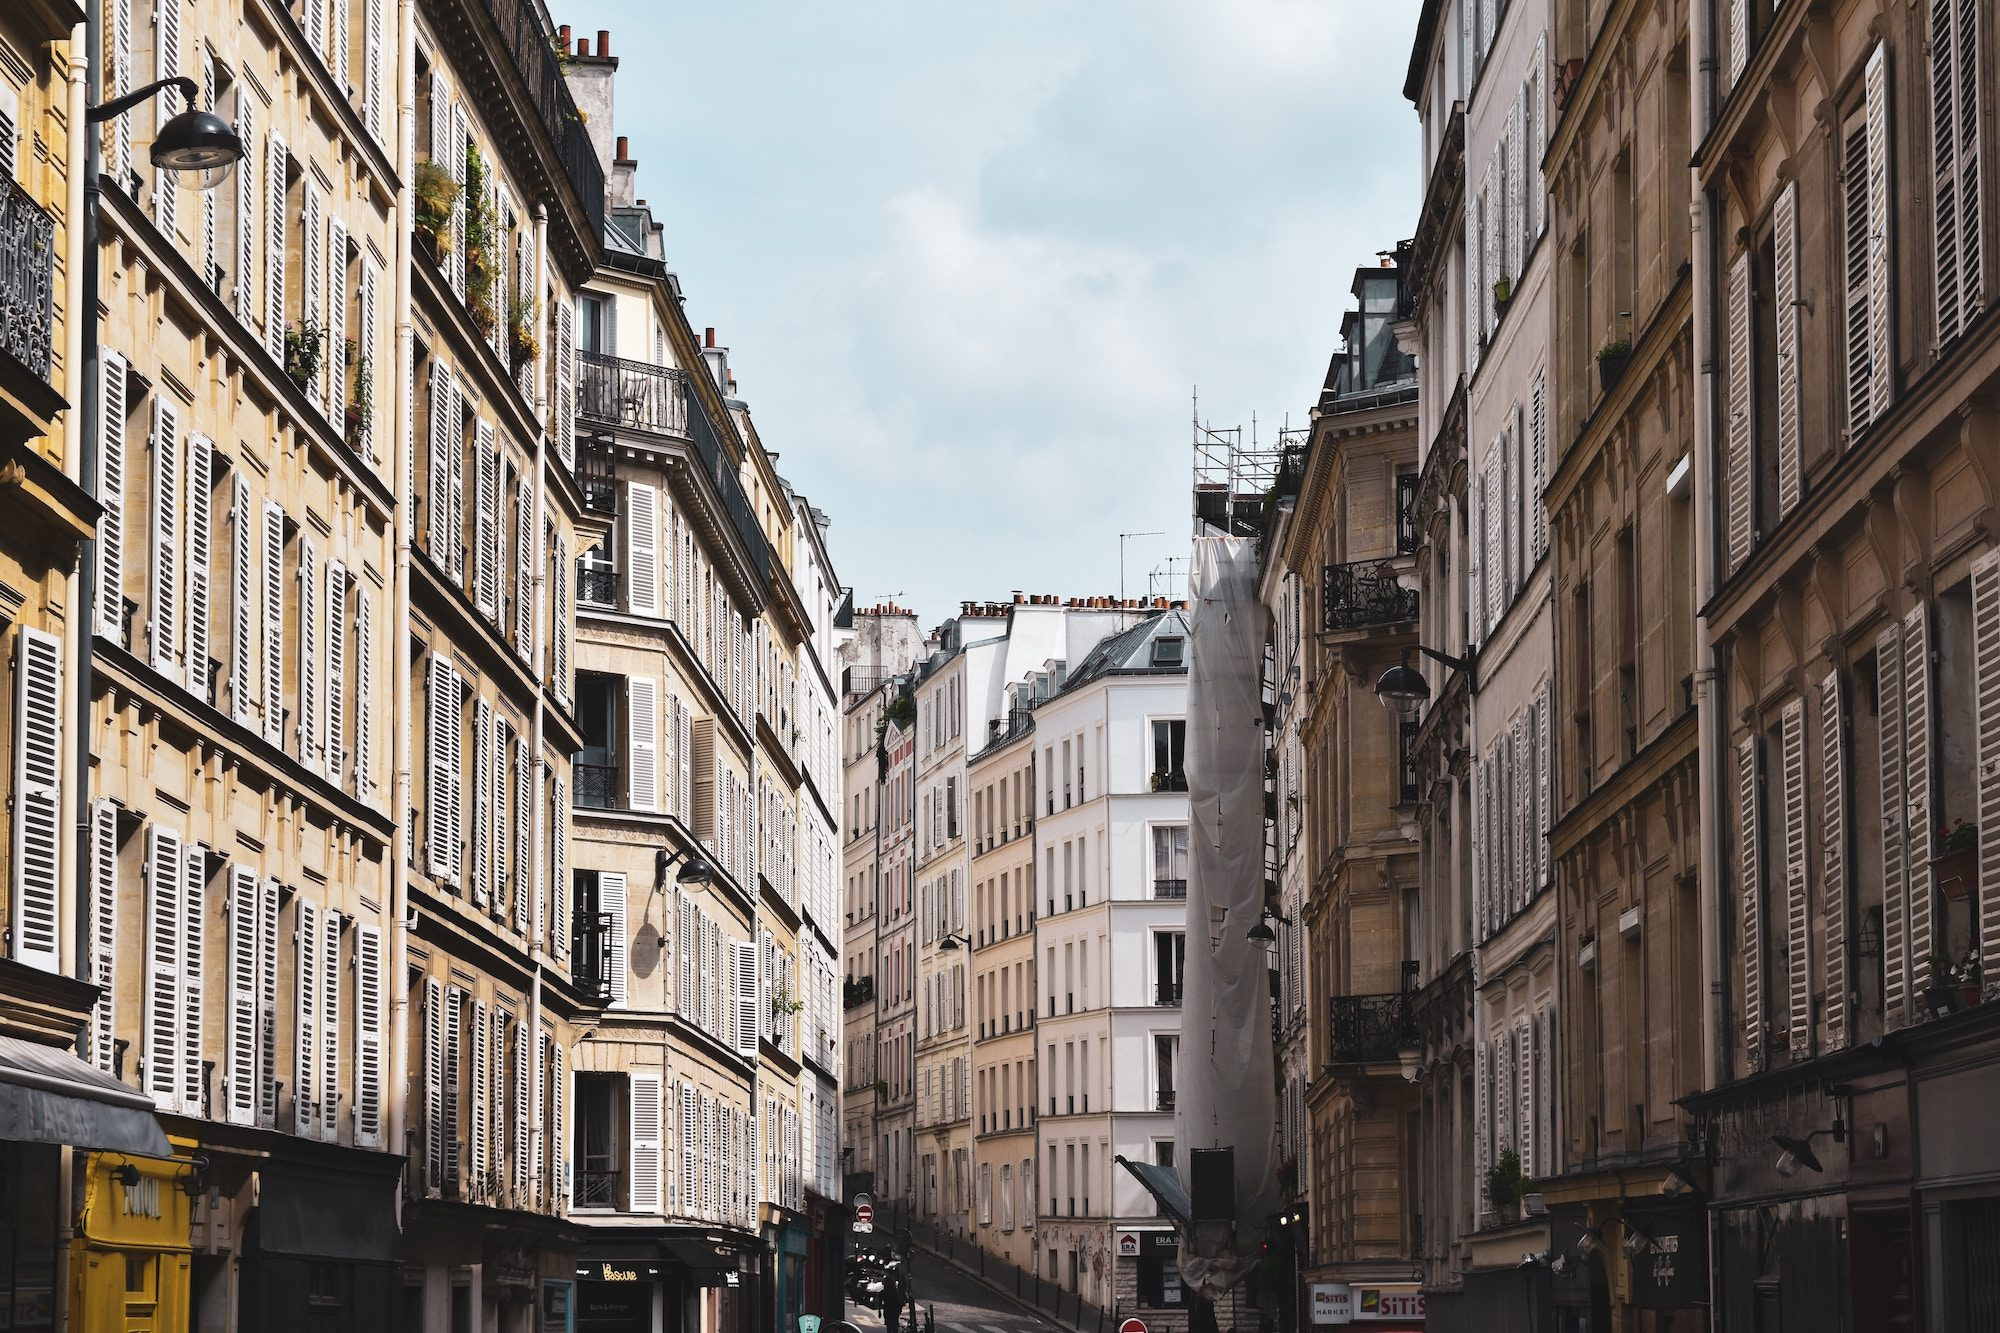 A view of white stone buildings with shutters lined up on both sides of a Paris street.